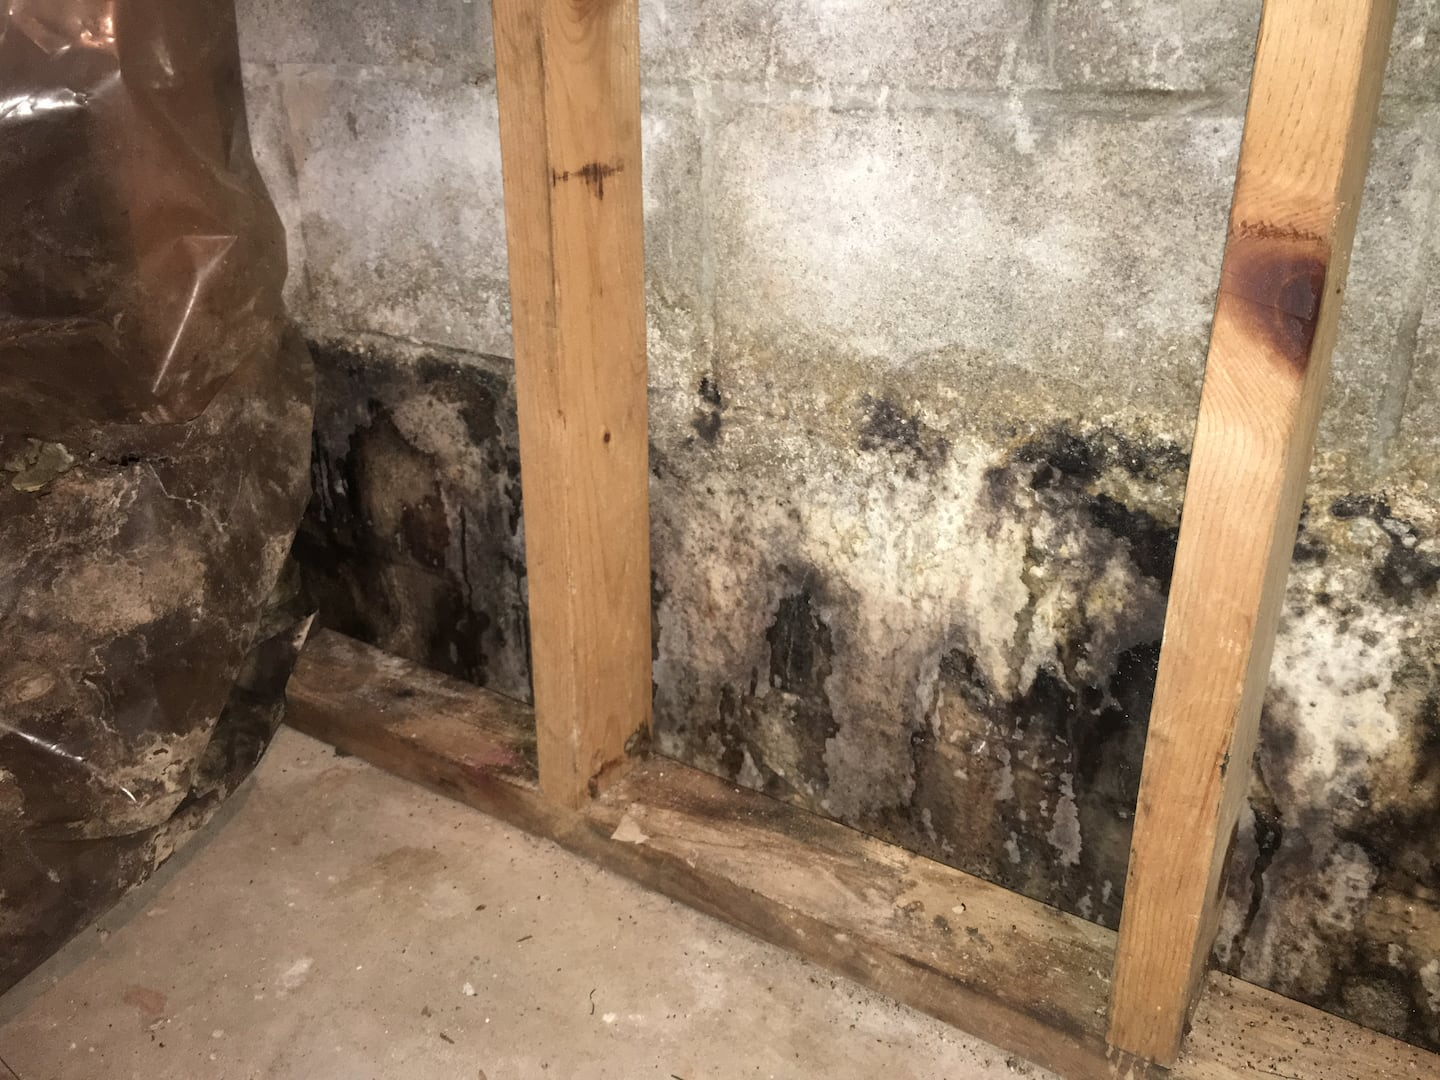 mold growing on wall  Mold Removal and Remediation. Mold Removal and Remediation   Angie s List